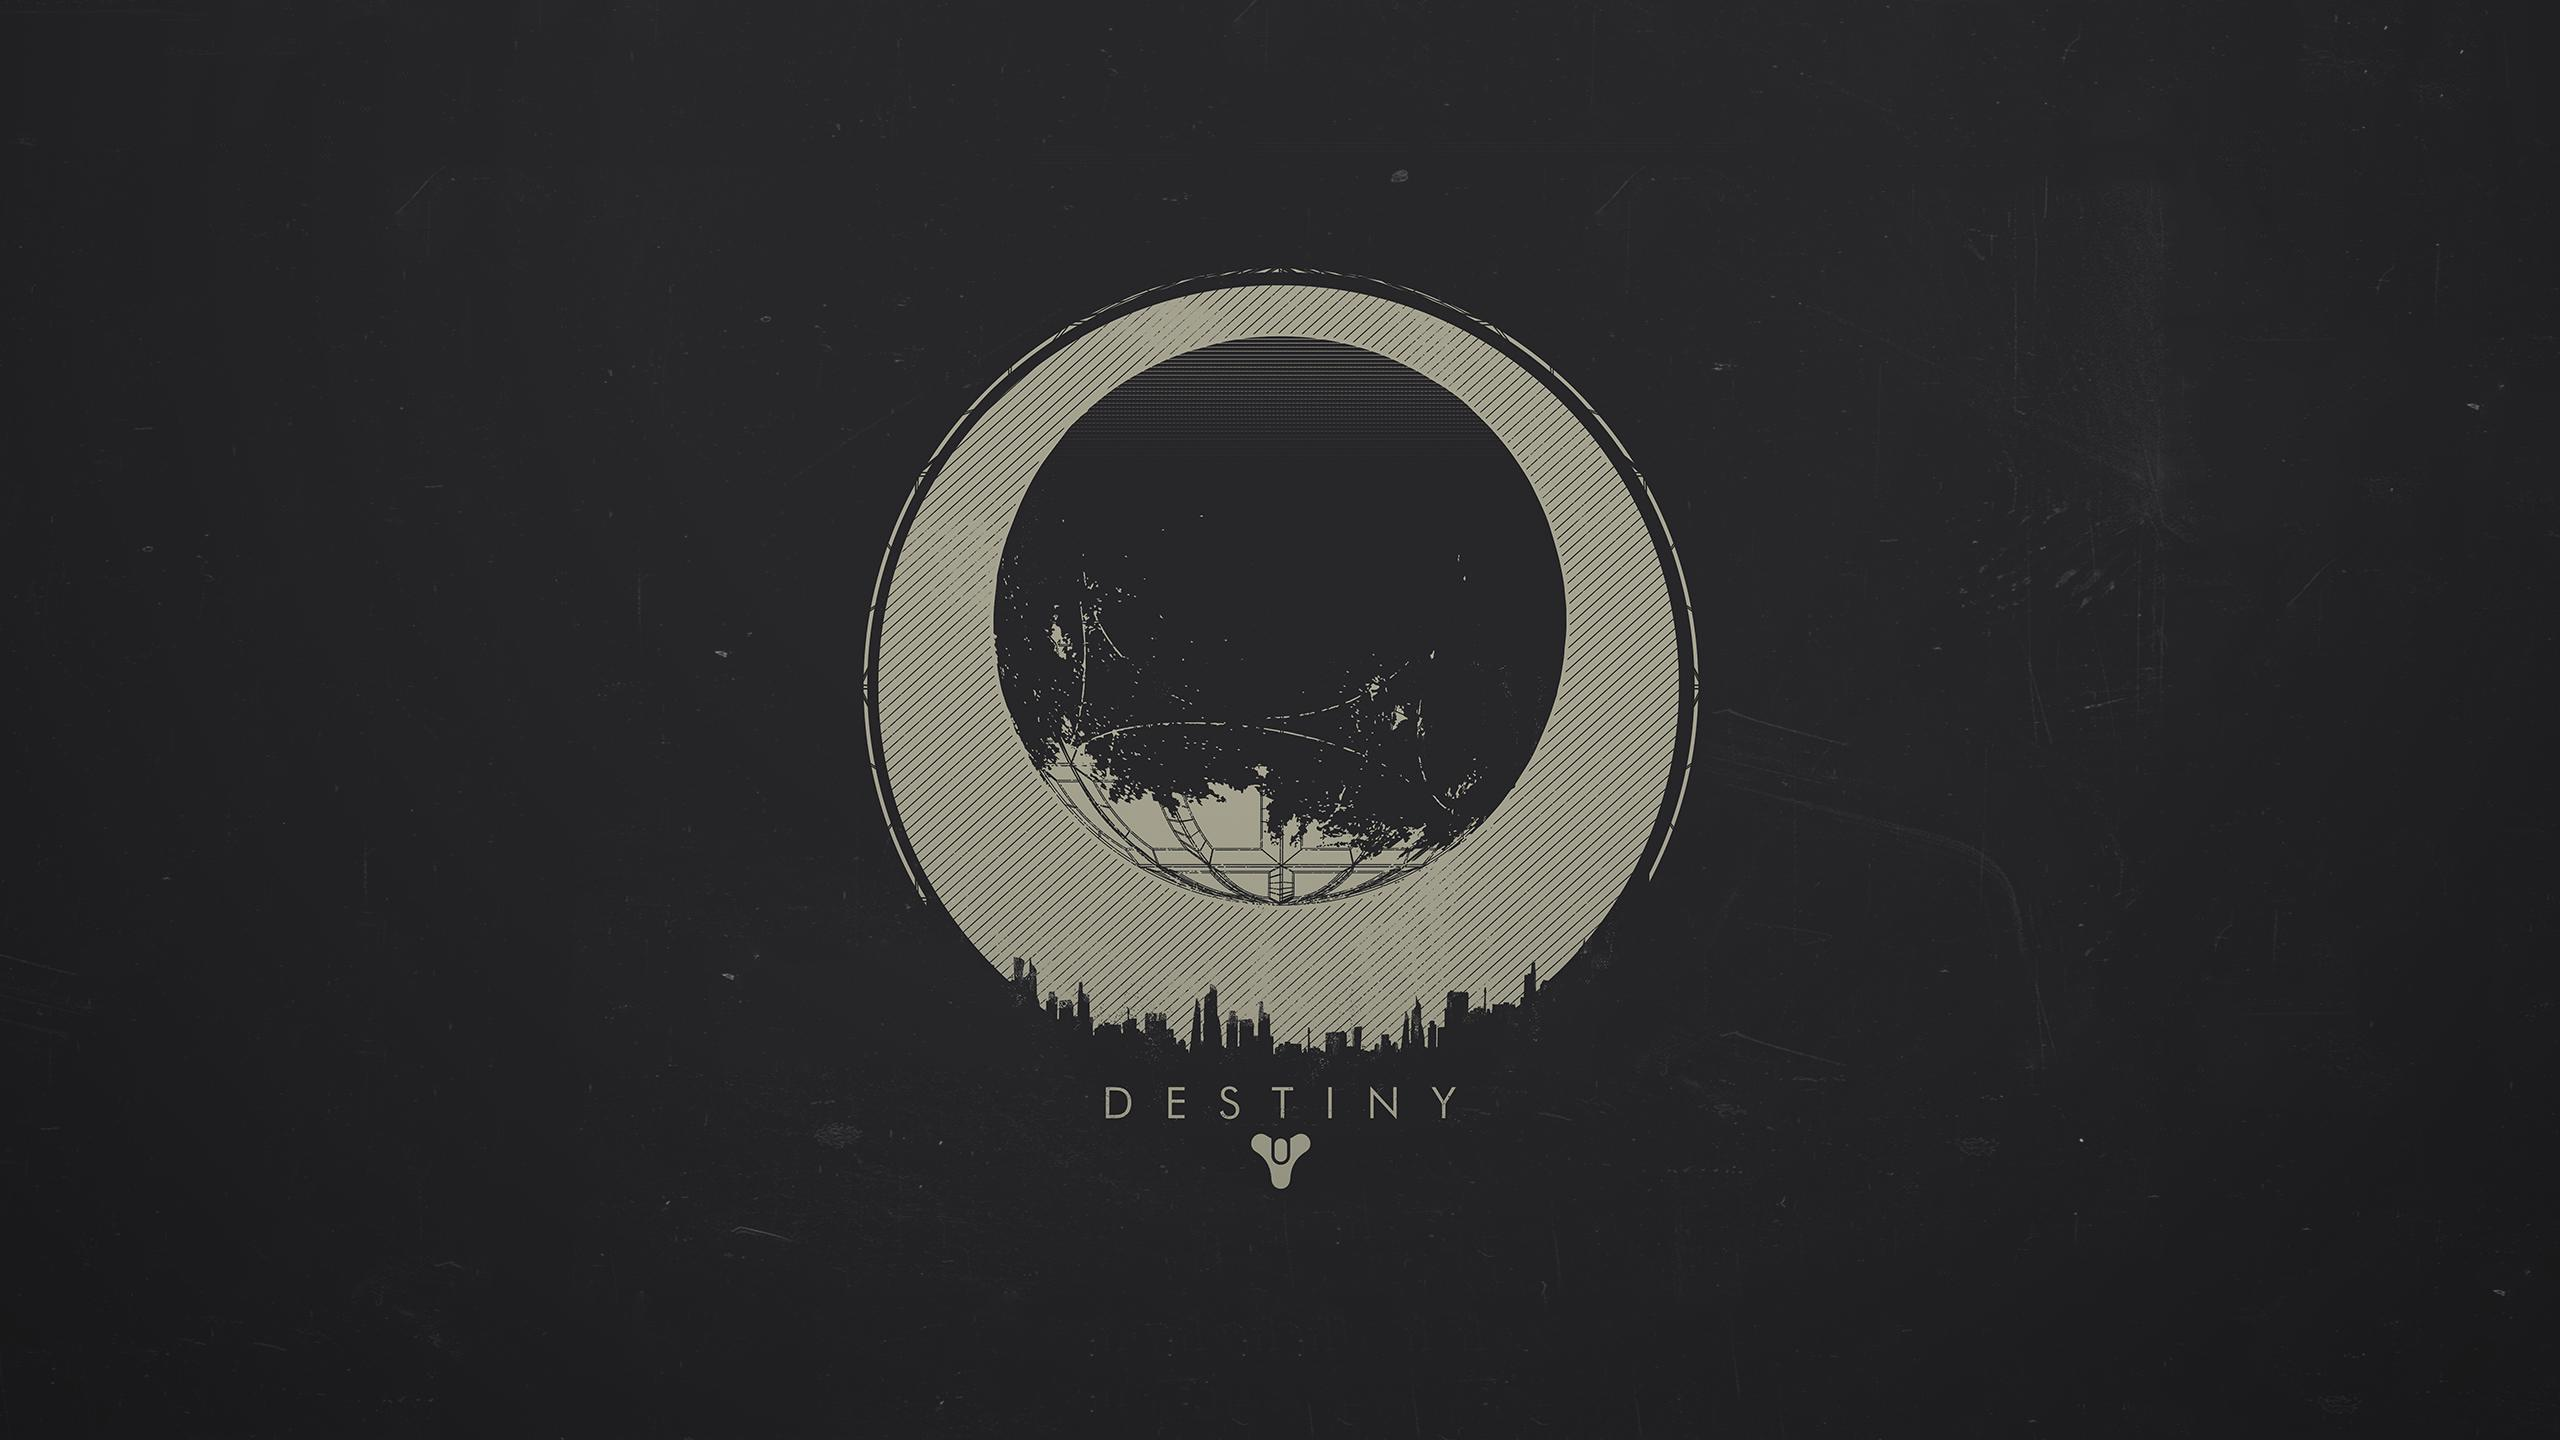 Destiny Minimalist Wallpaper - WallpaperSafari